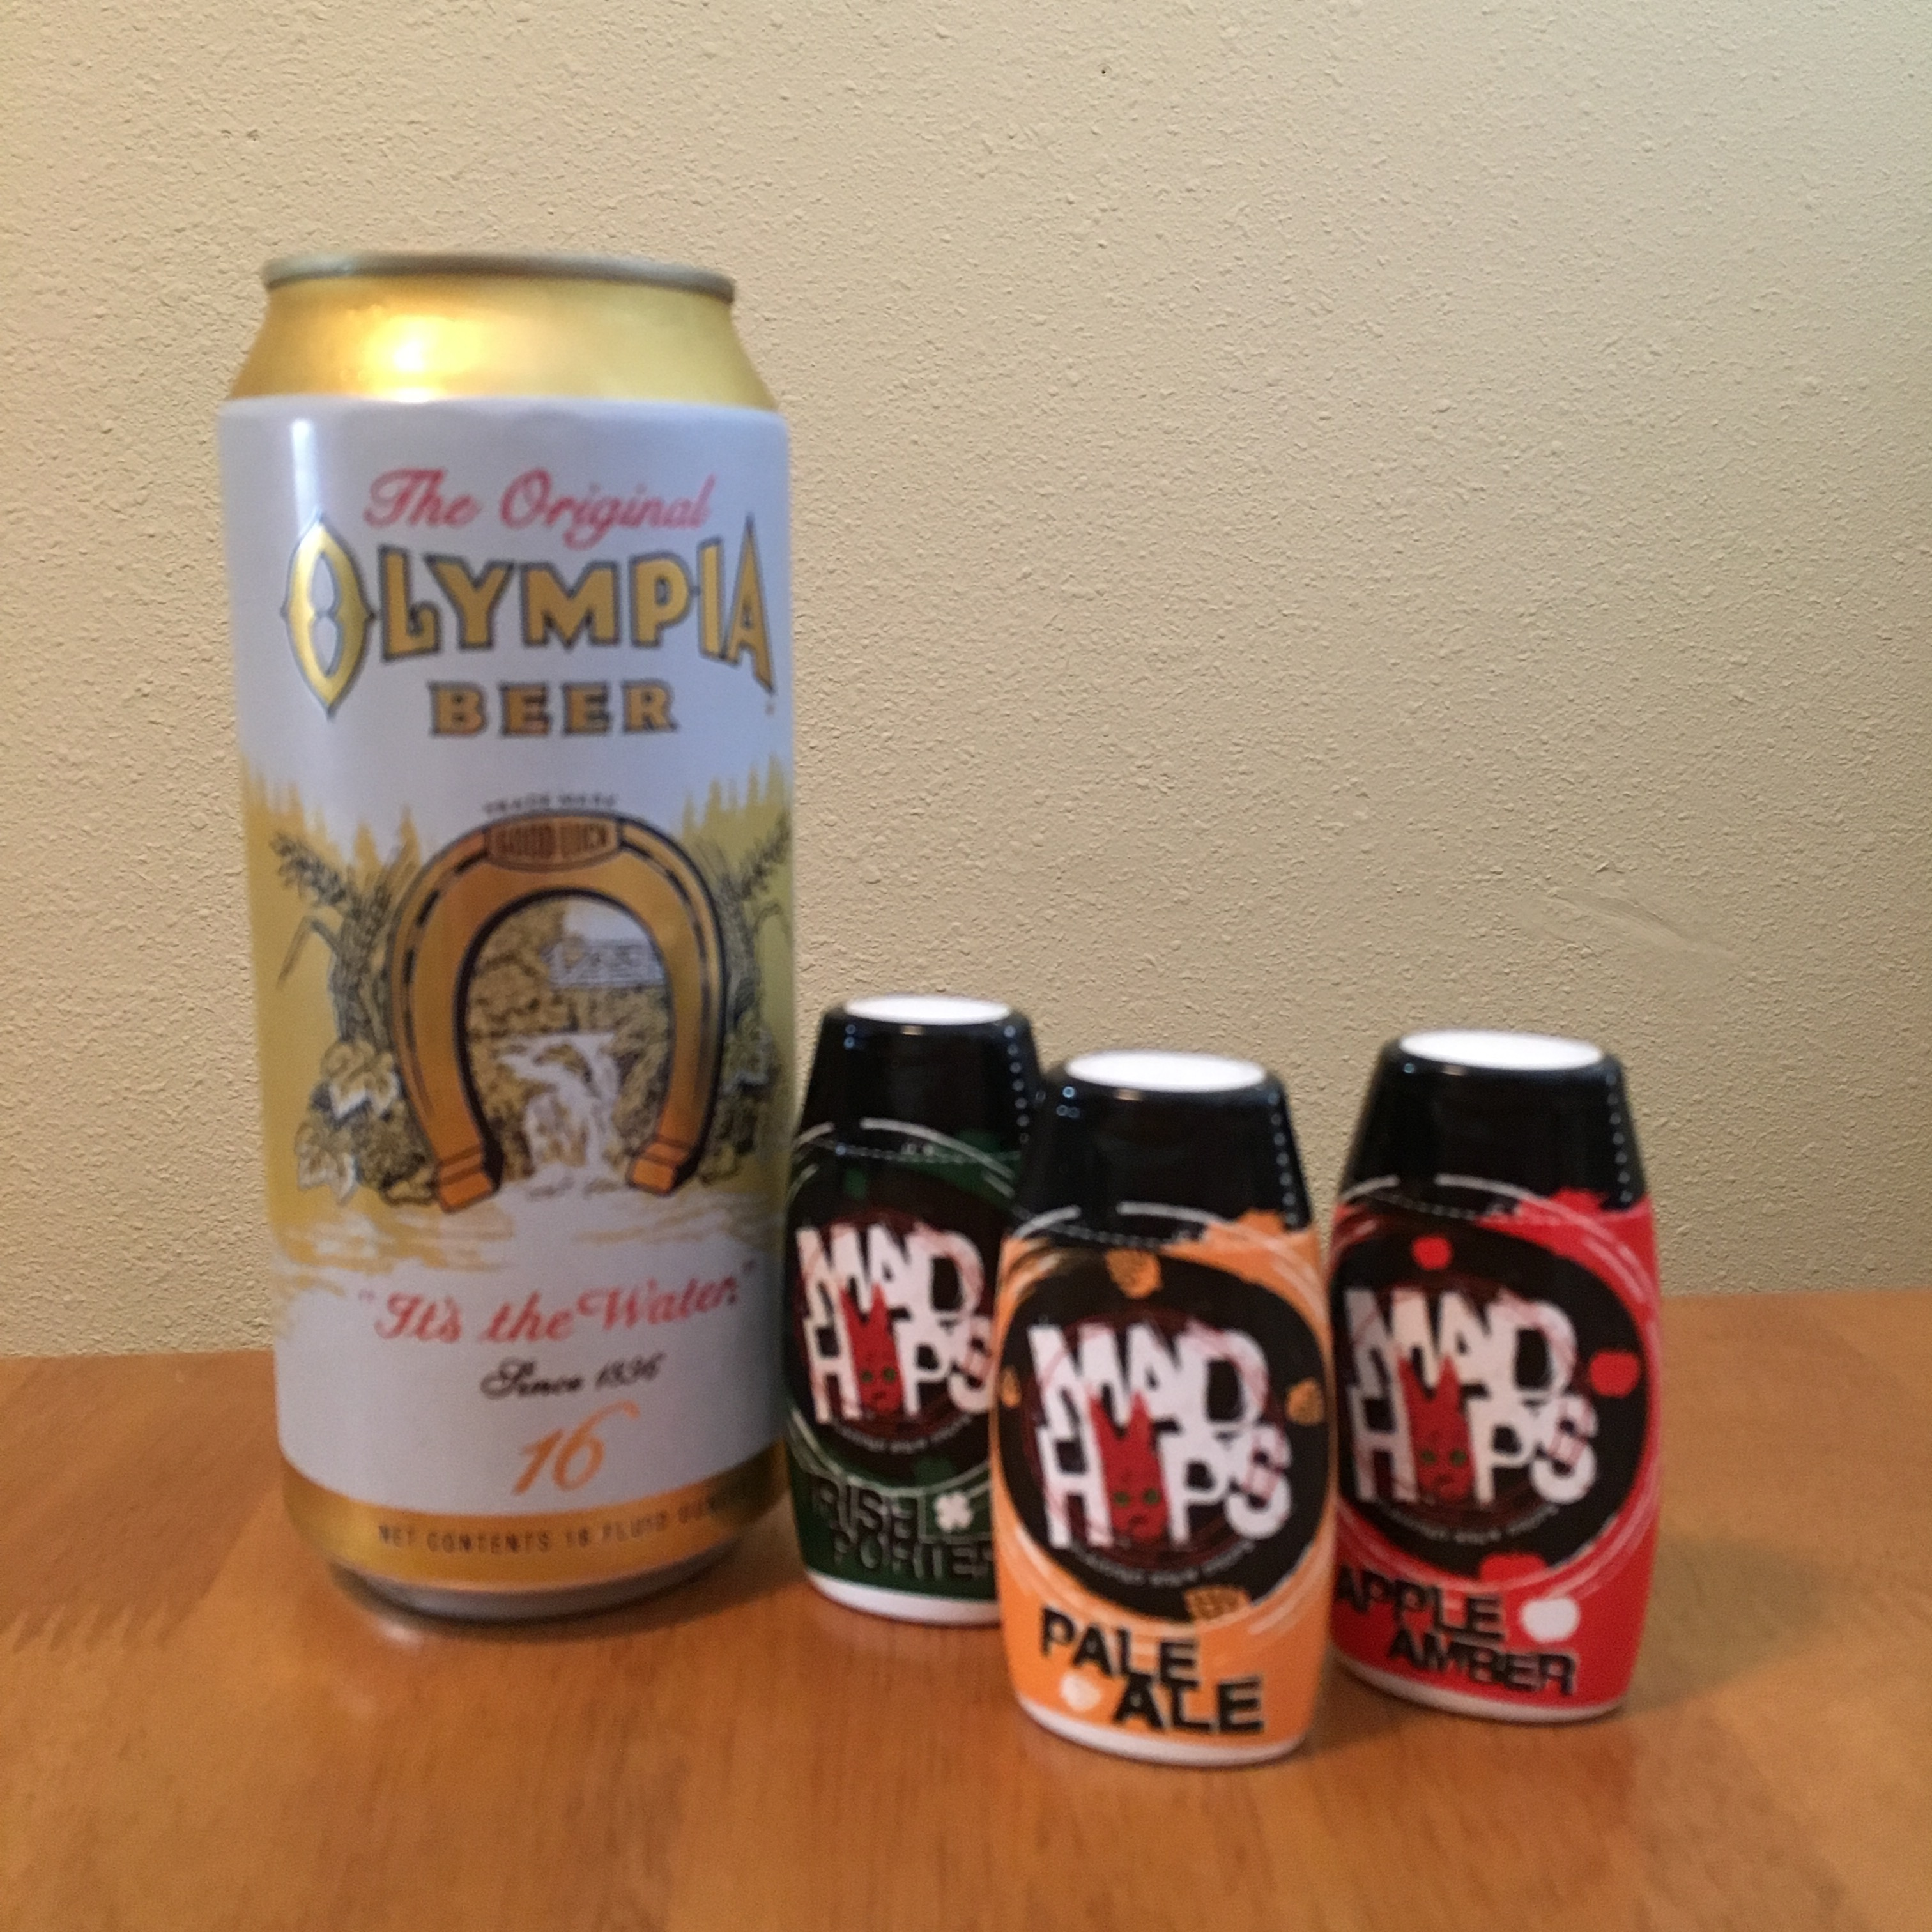 Mad Hops Pale Ale, Apple Amber, and Irish Porter mixed with Olympia Beer